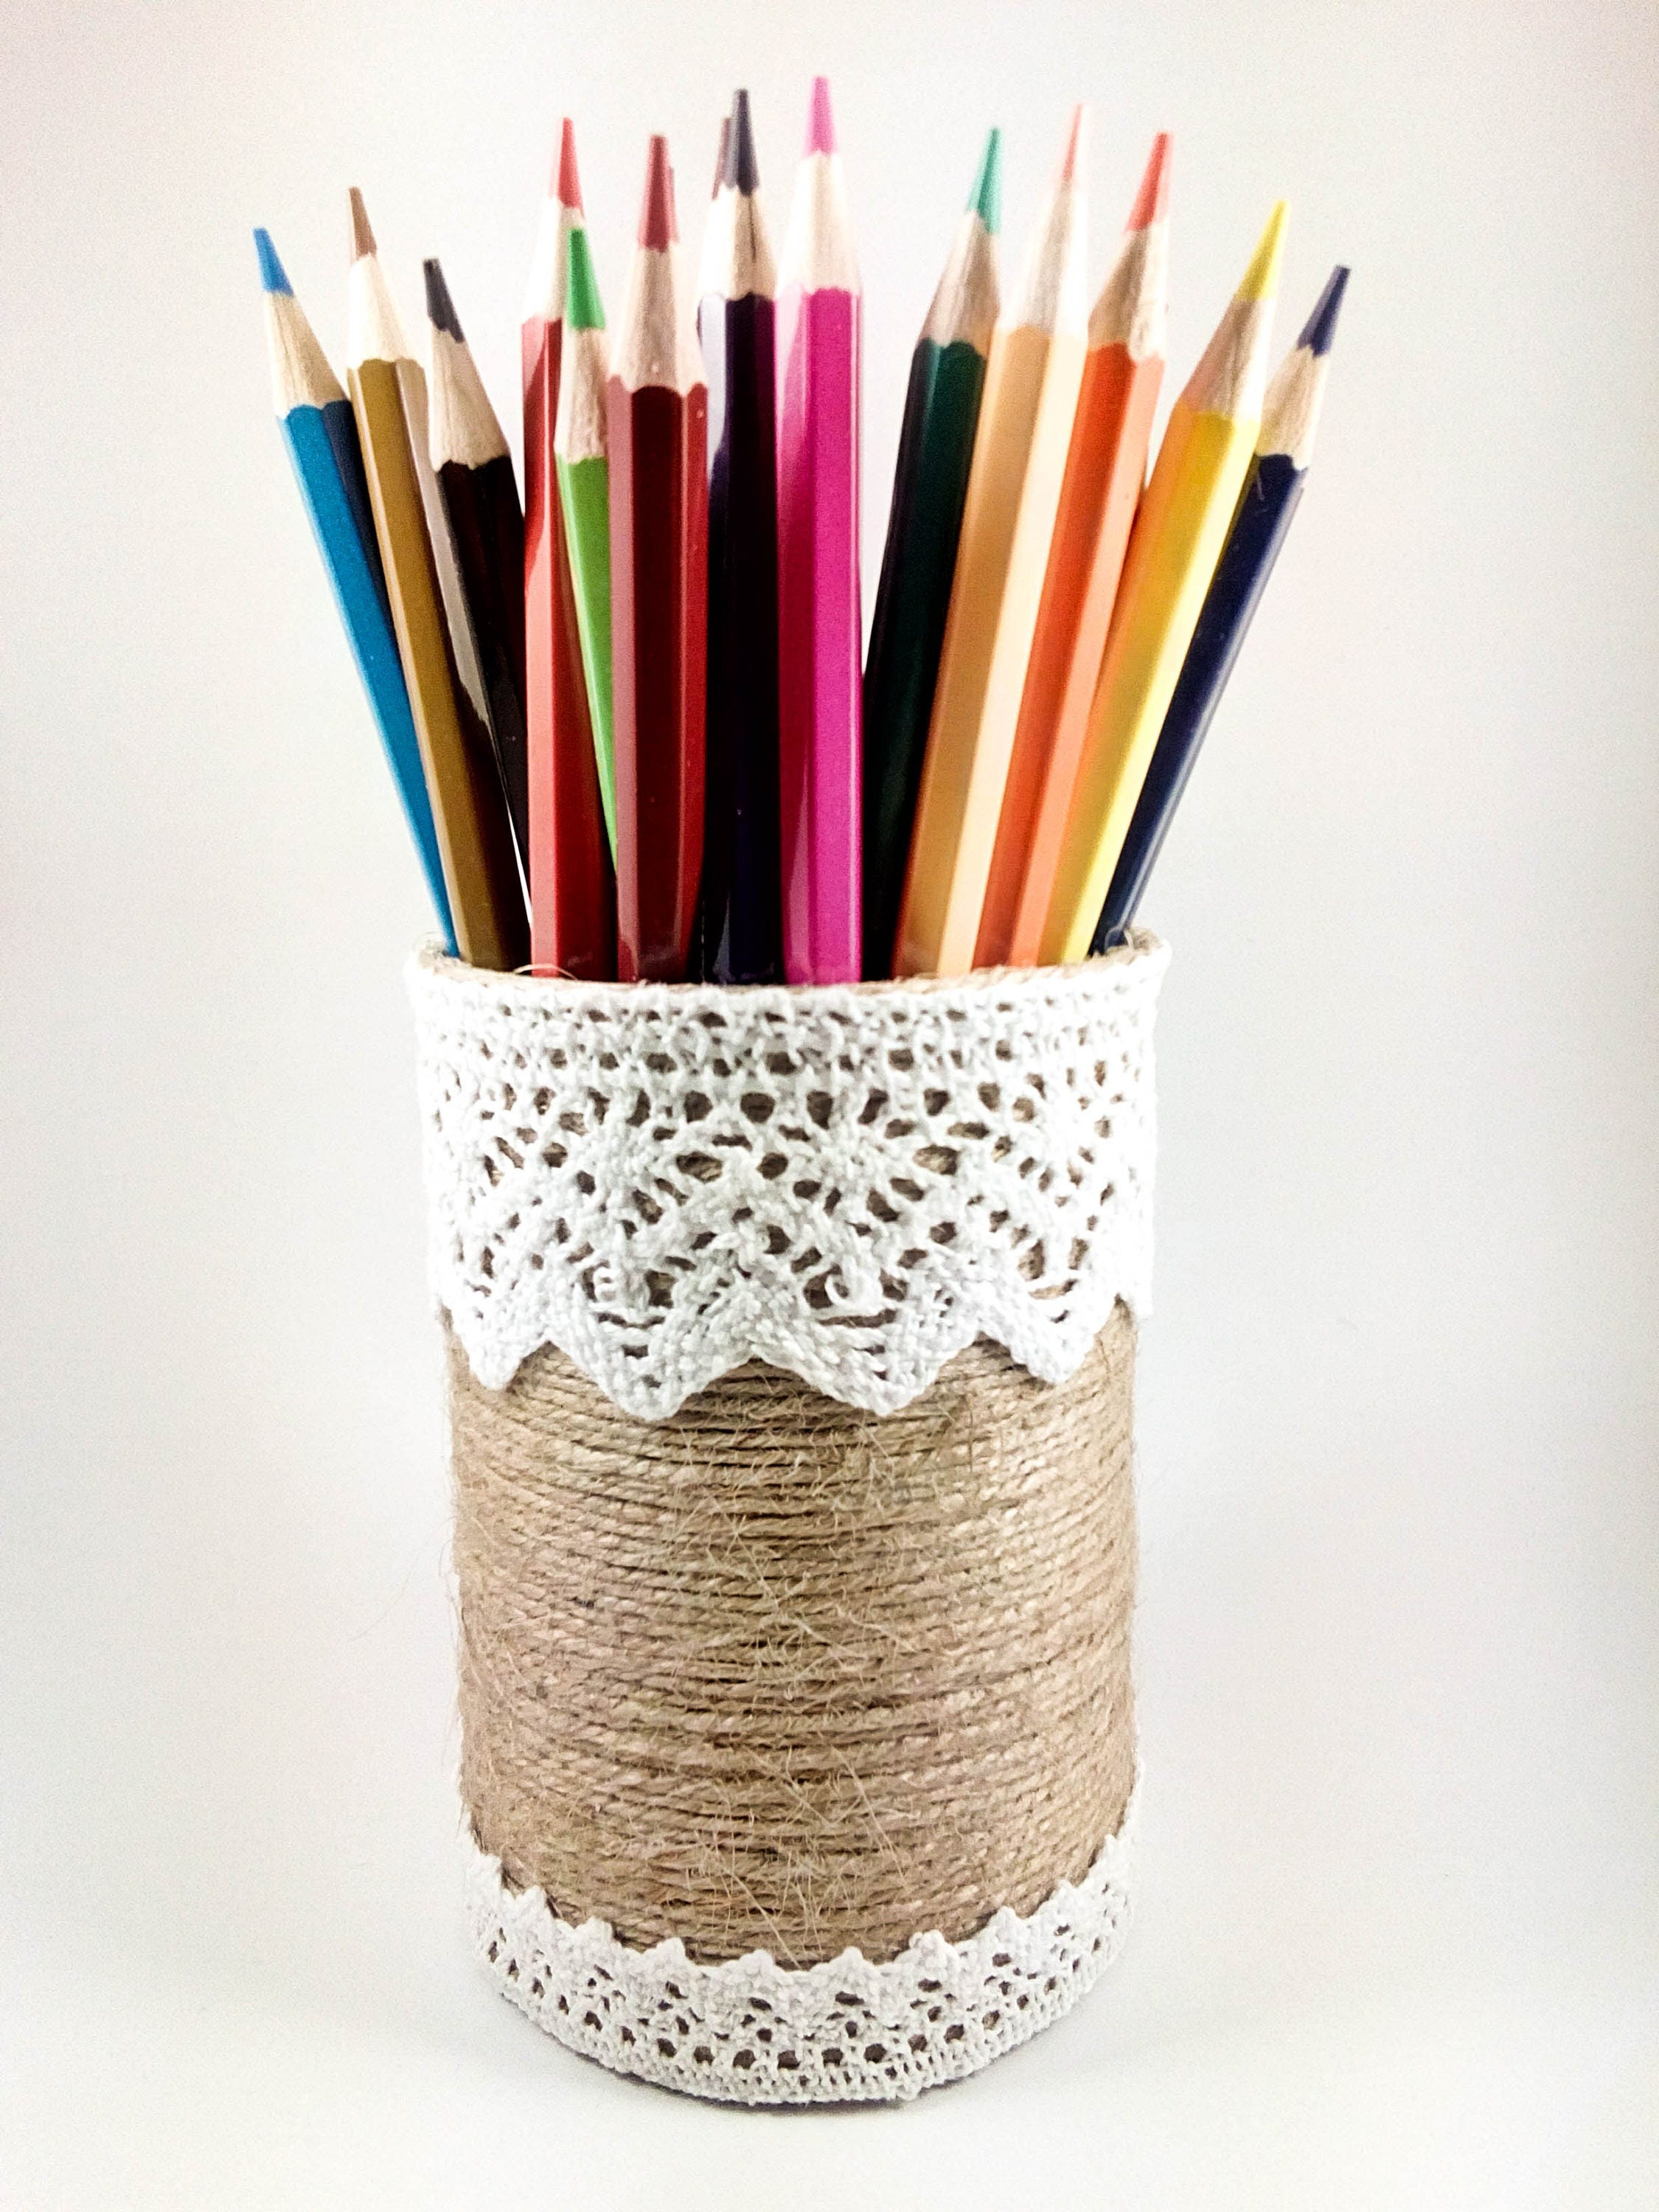 Pencil Holder For Desk Desk Accessories For Women Gift For Etsy,Where To Find Houses For Rent